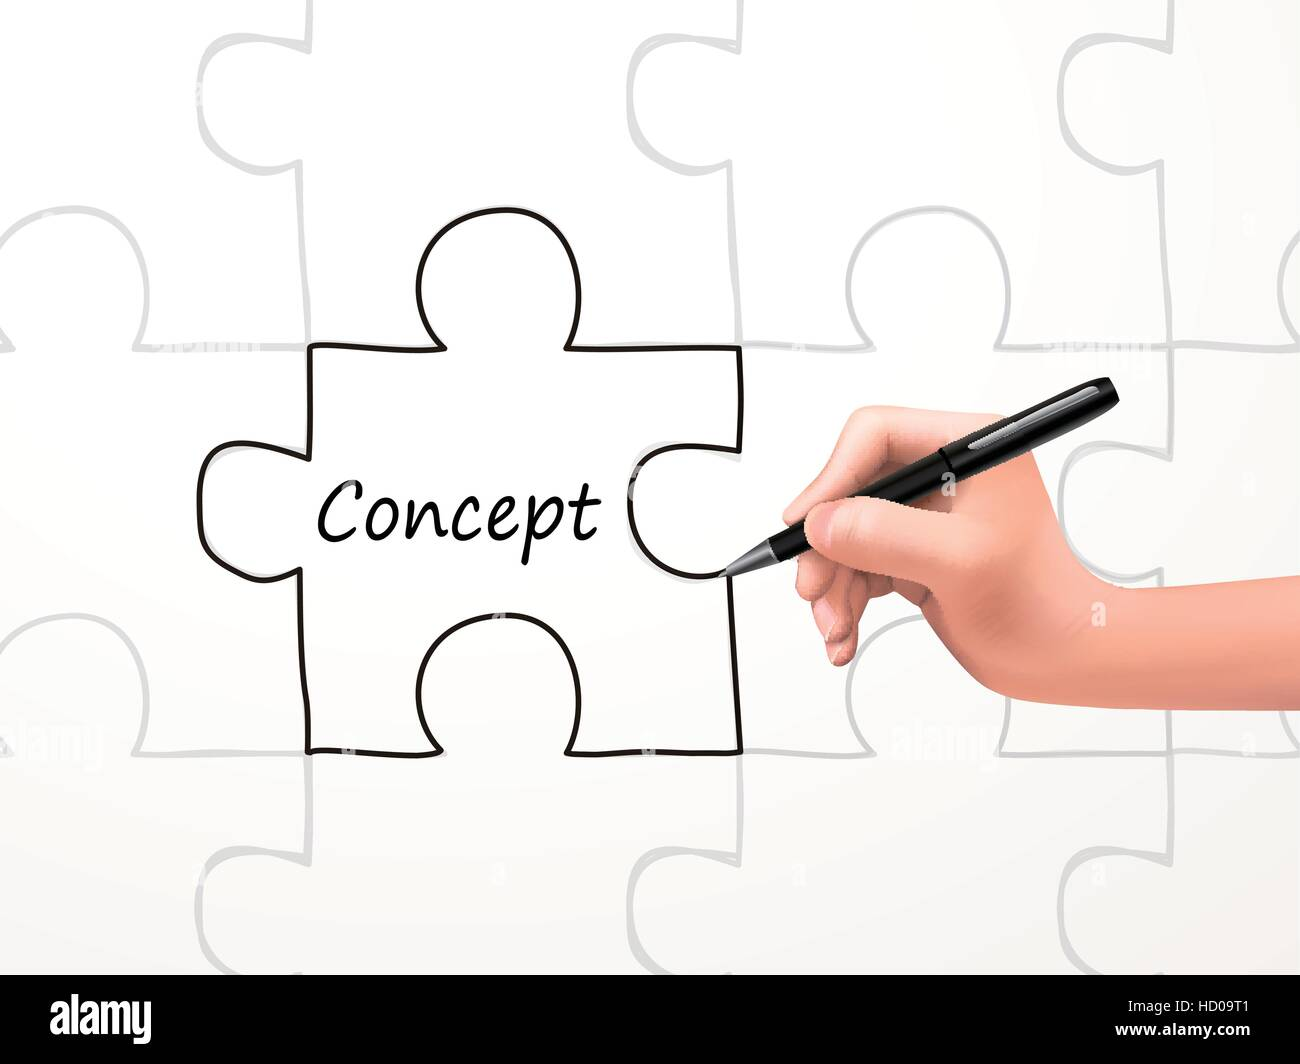 concept word and puzzle drawn by human hand over white background - Stock Vector